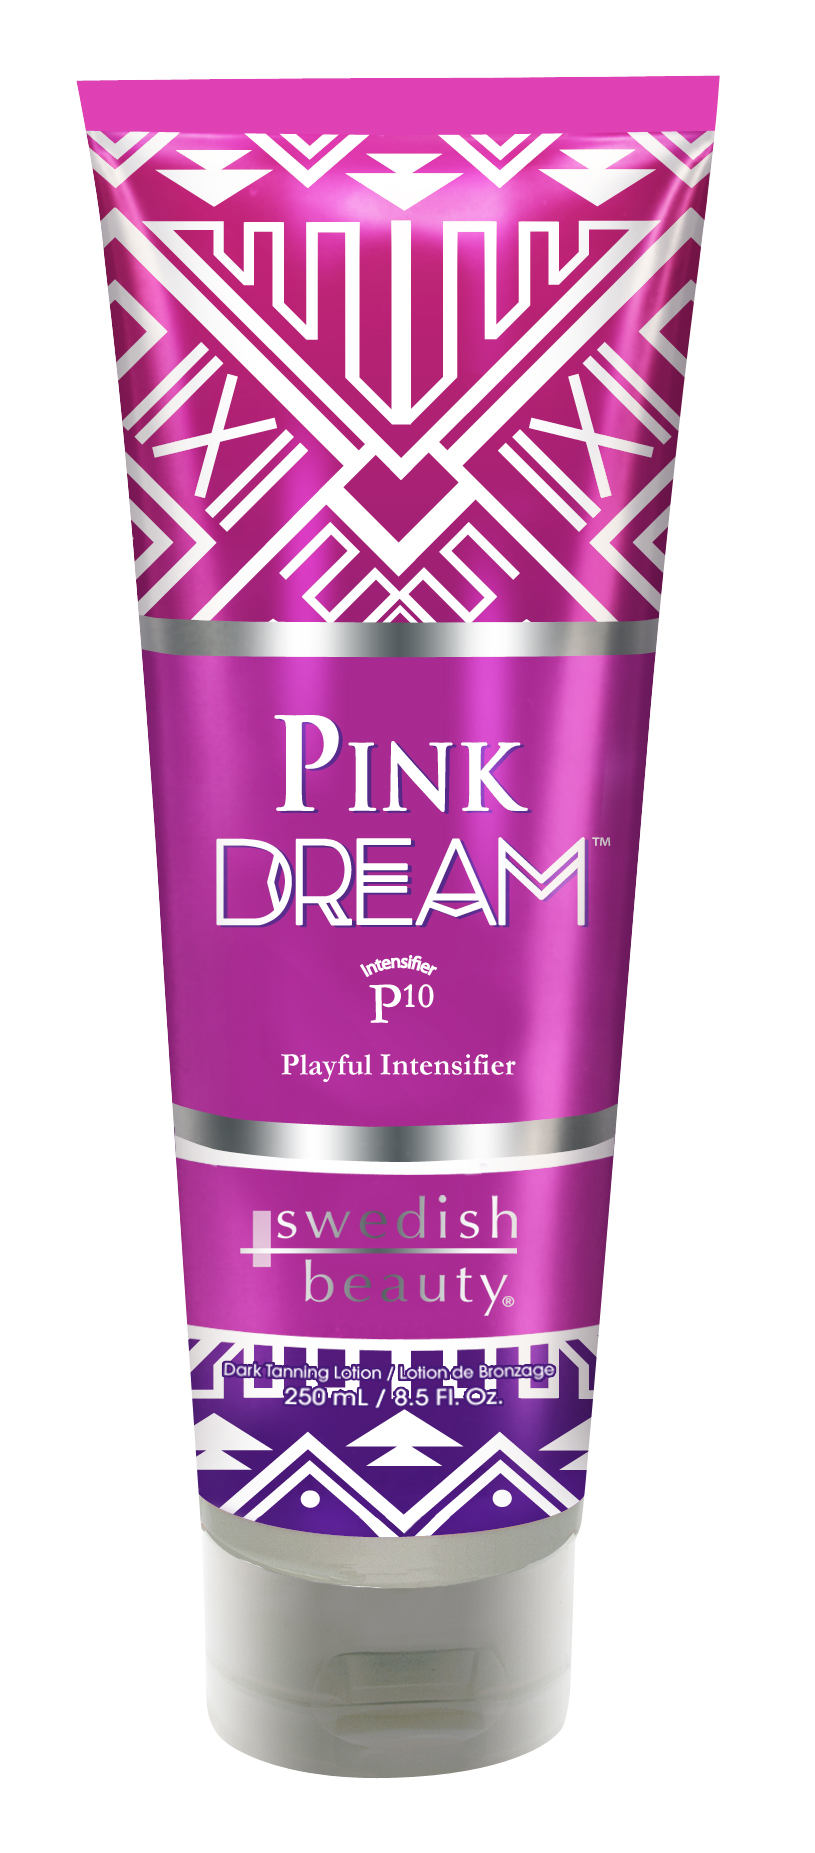 Pink Dream™ P10 Playful Intensifier with Moroccan Argan and Coconut Fruit